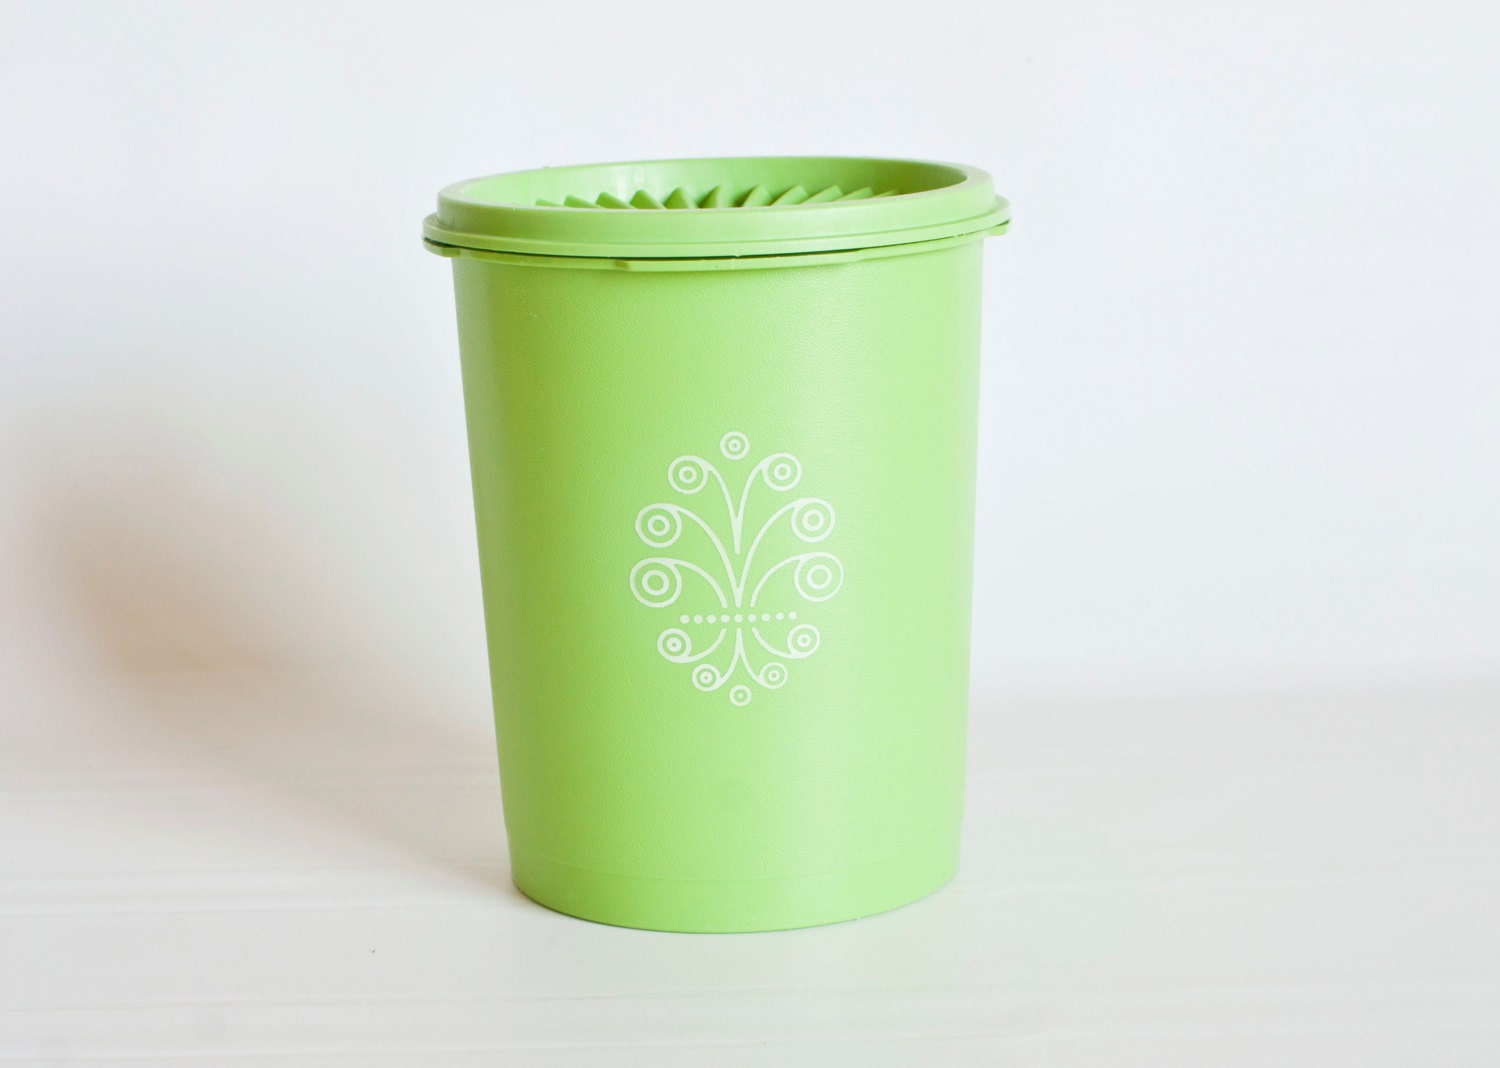 kitchen canisters on pinterest kitchen canisters retro and maids apple green tupperware canisters